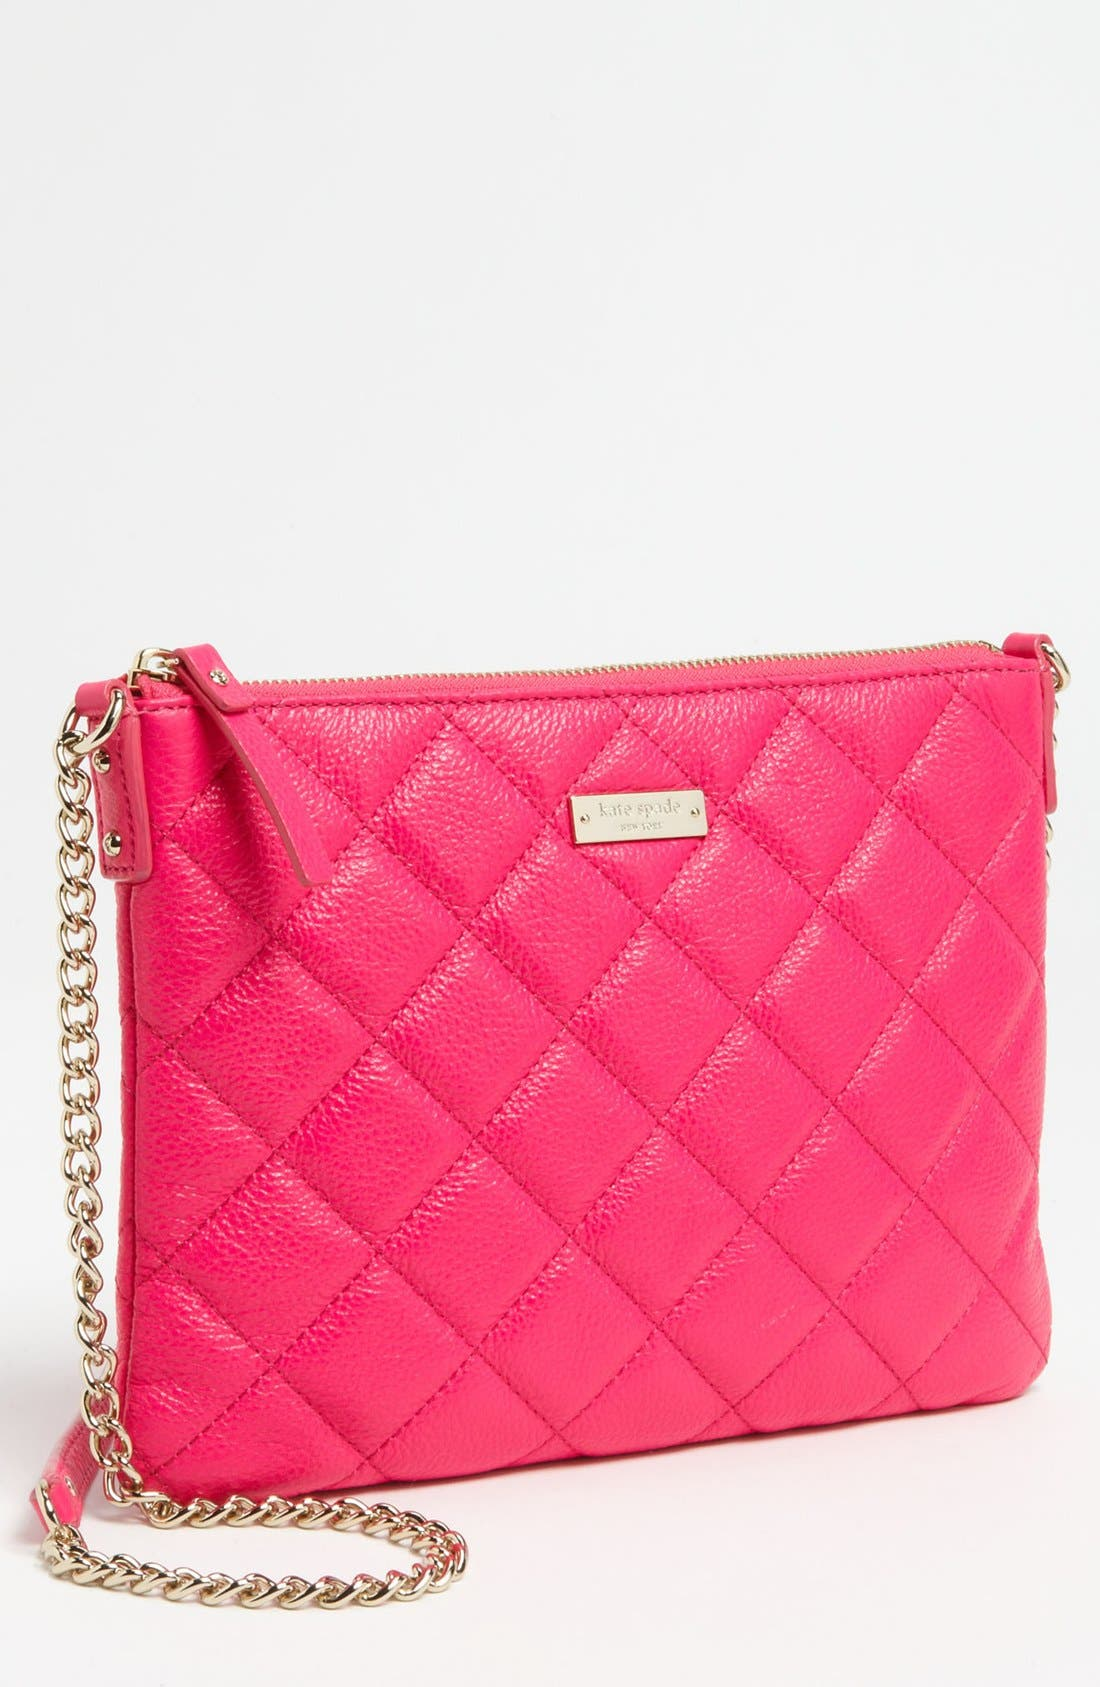 Main Image - kate spade new york 'gold coast - ginnie' crossbody bag